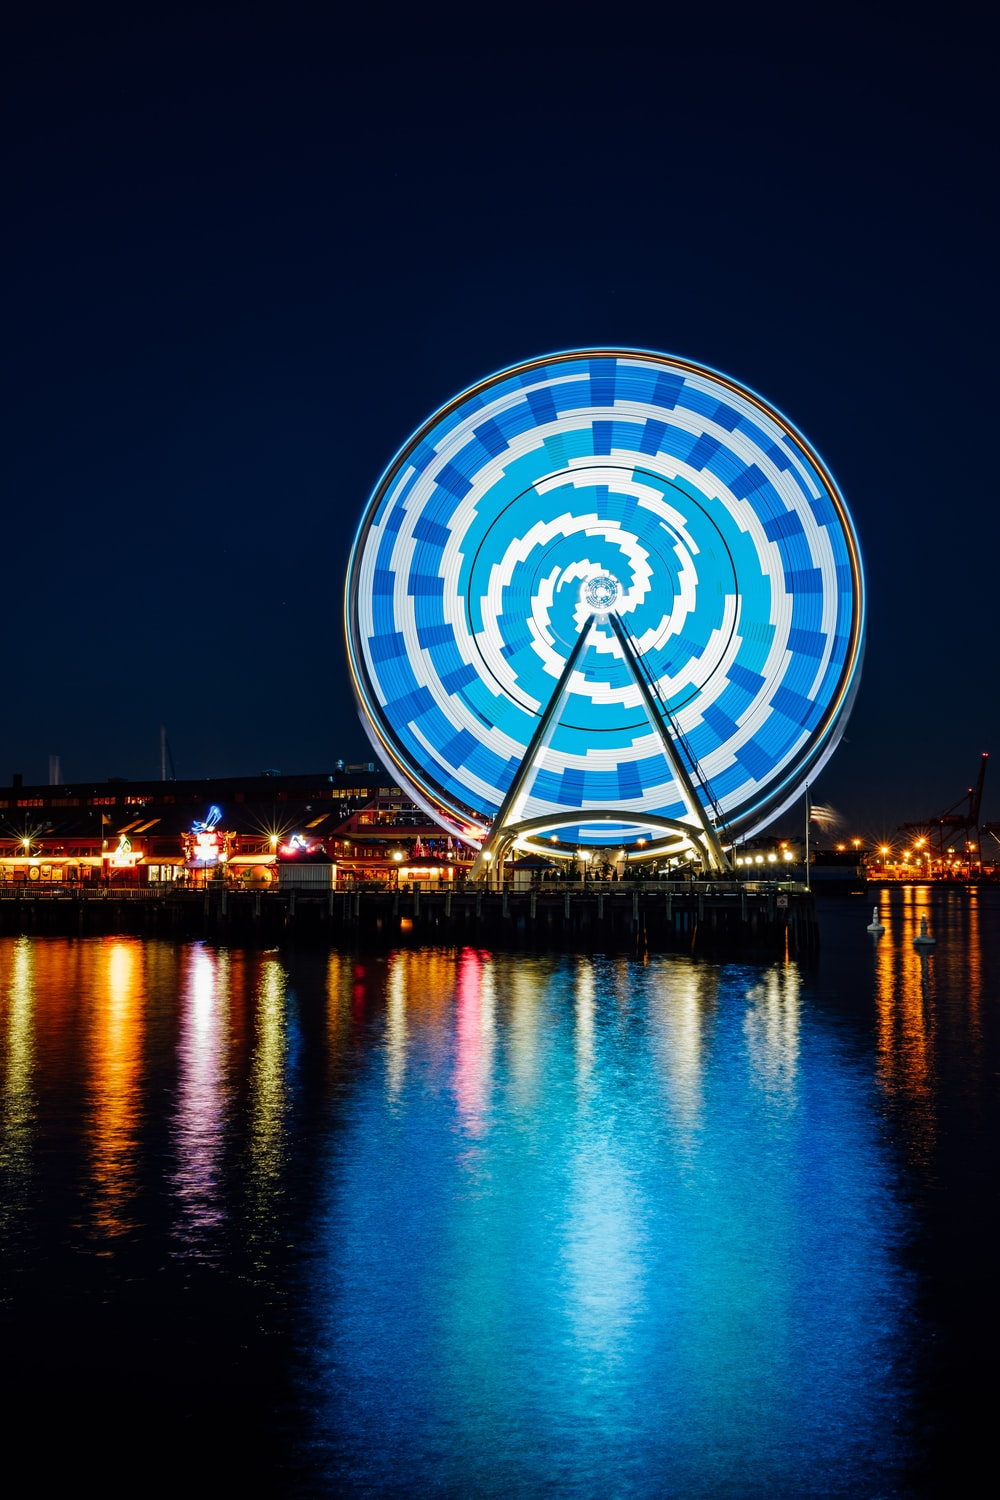 Ferris Wheel with blue LED light reflecting on body of water during night